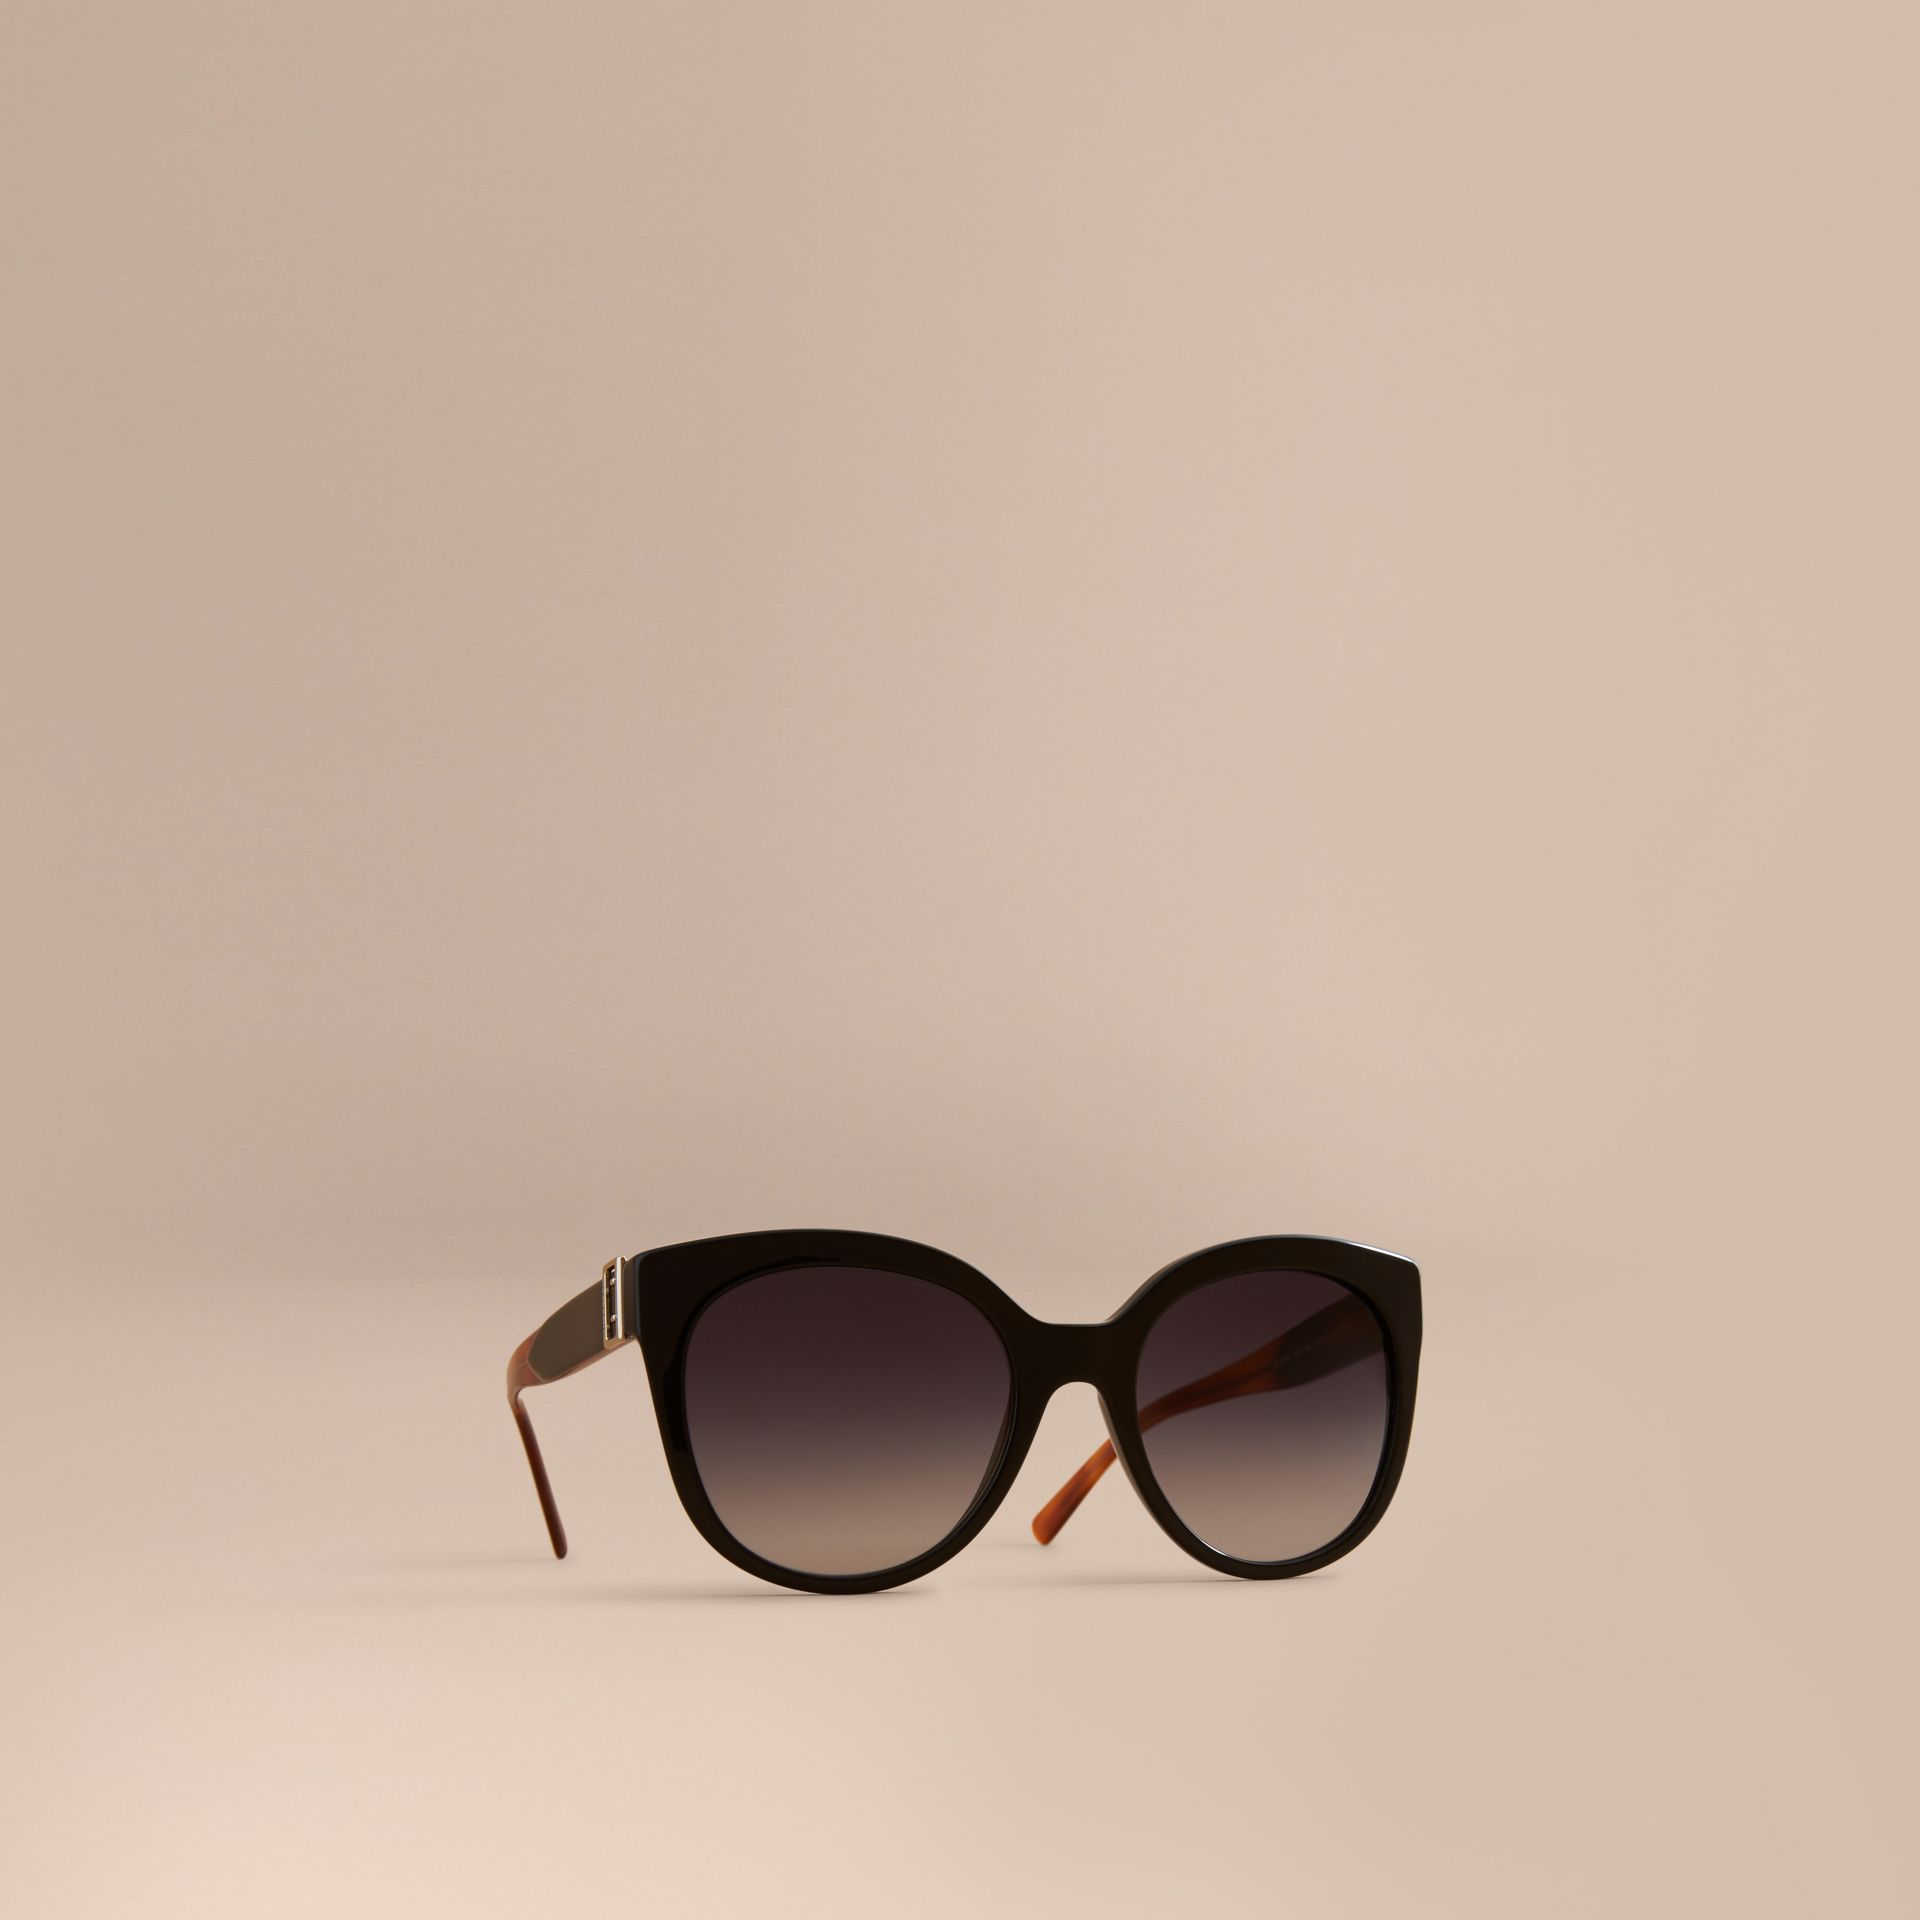 Buckle Detail Cat-eye Frame Sunglasses in Black - Women | Burberry Australia - gallery image 0